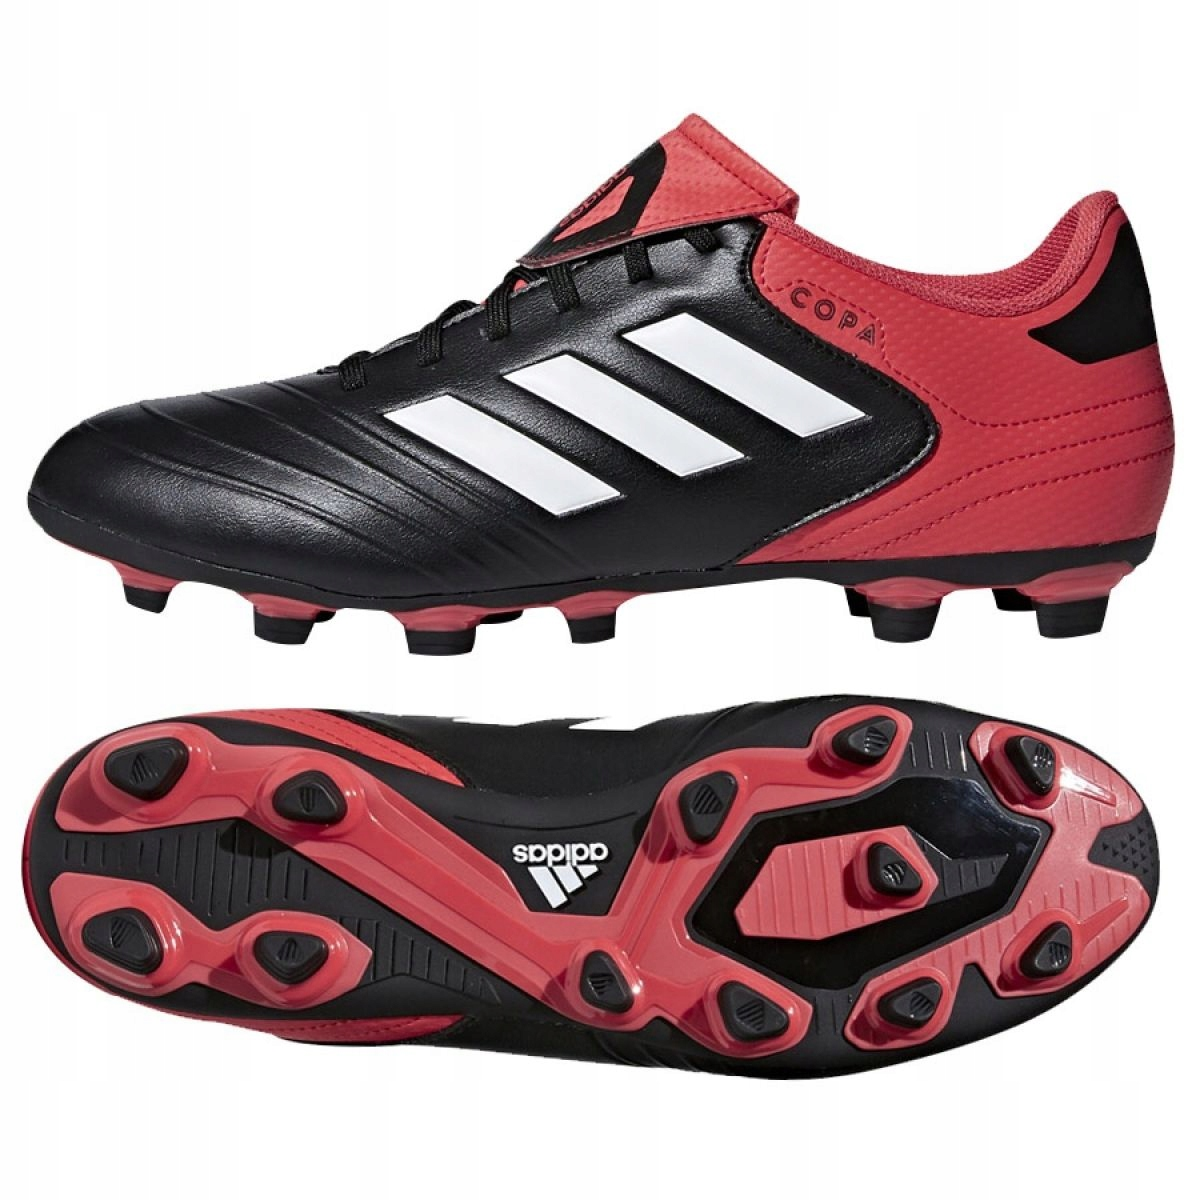 newest collection 4aee4 5e02a Buty piłkarskie adidas Copa 18.4 FxG M CP8 47 13